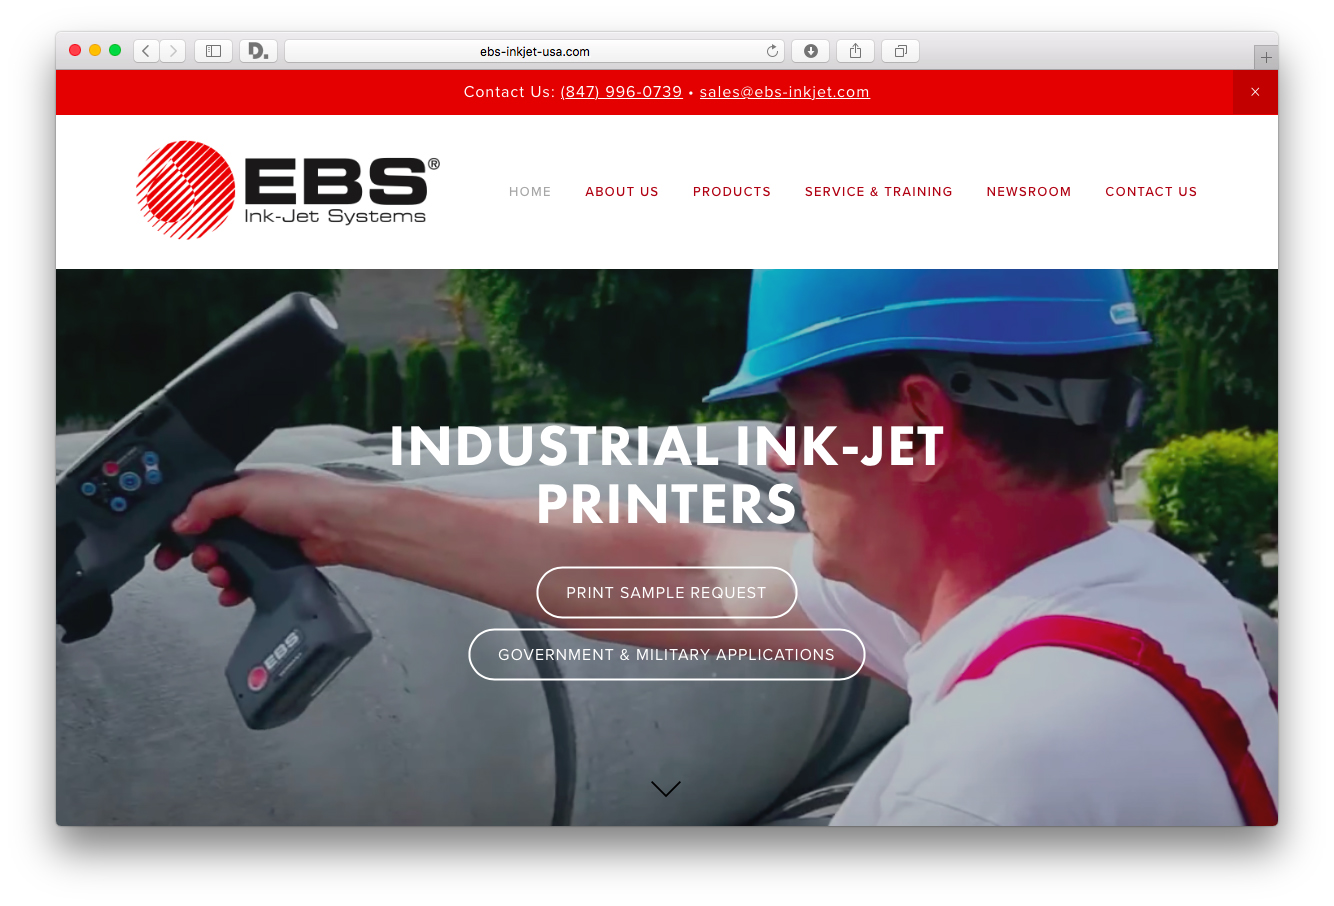 Ebs Ink Jet Systems Manufacturer Of Contact Free Industrial Mobile Photo Printer Technology Printers